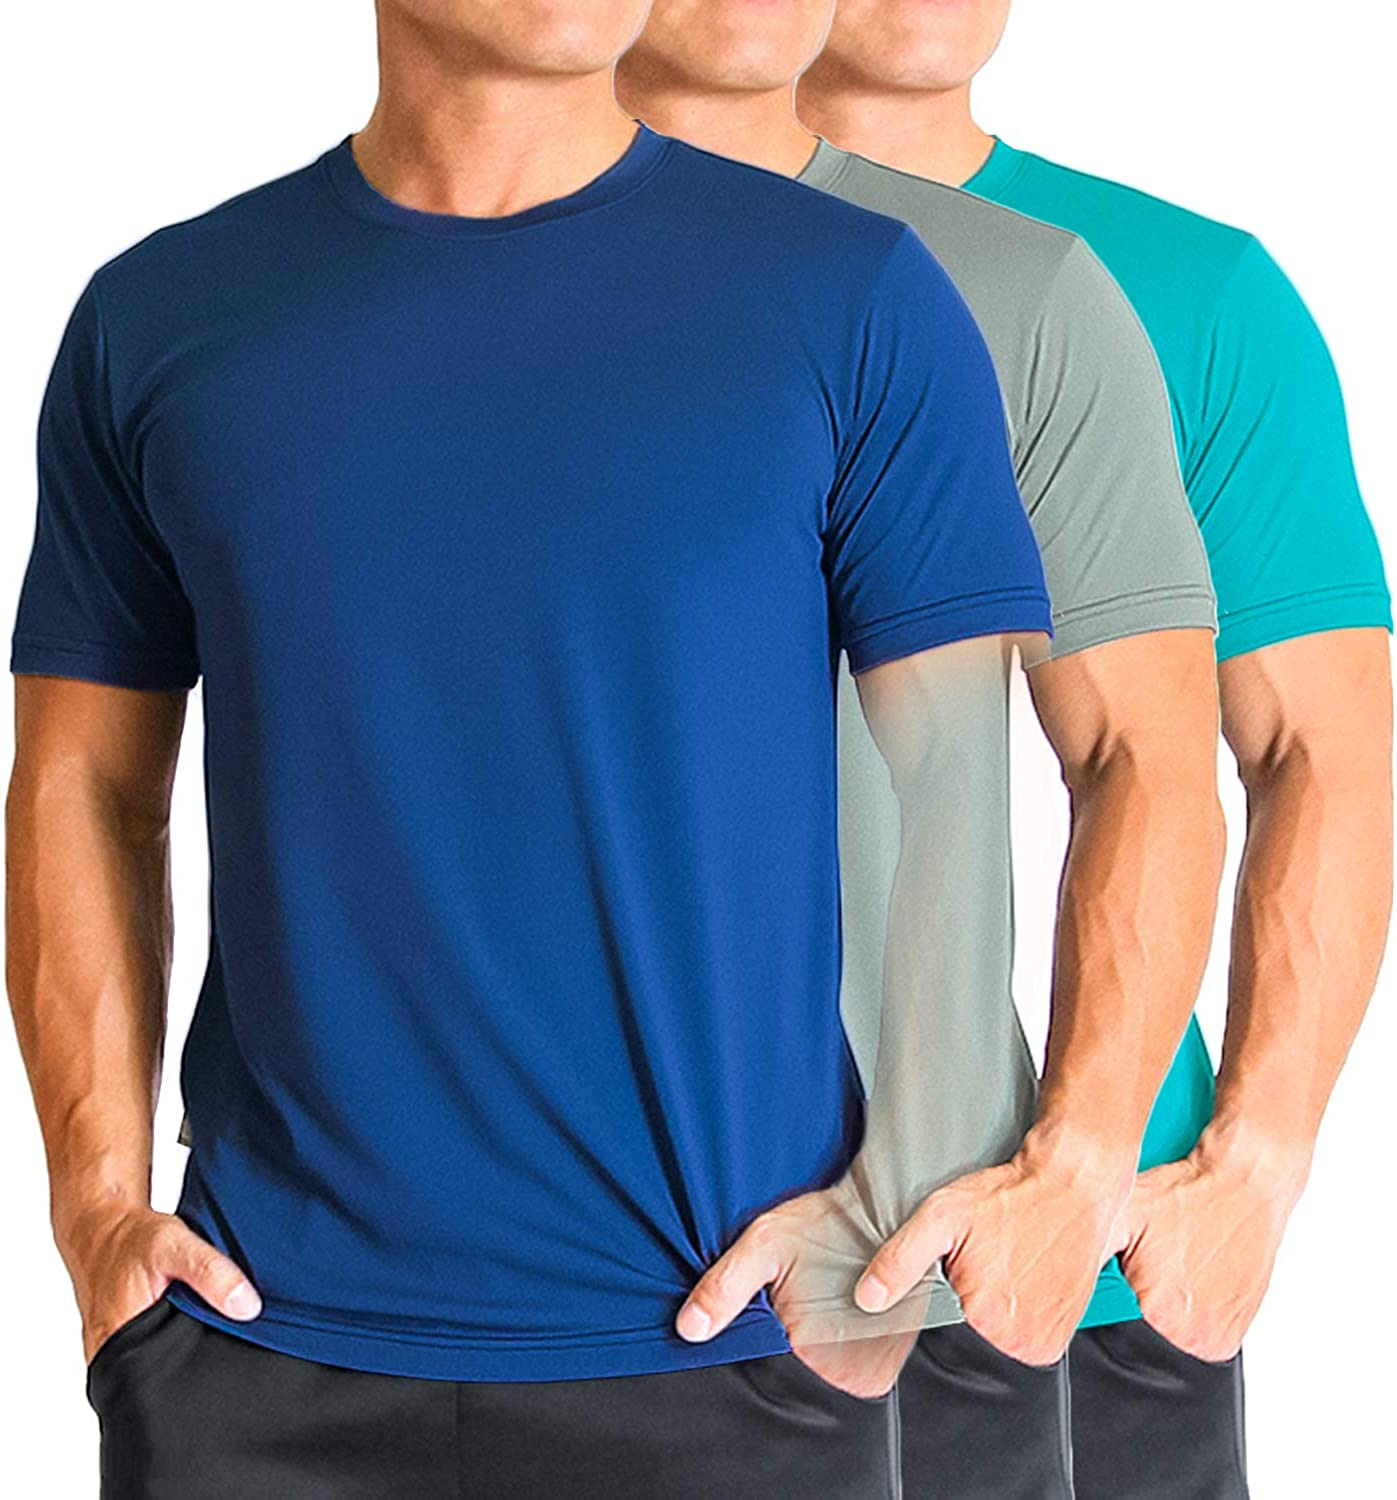 Litume Mens Quick Dry UV Sun Protection T Shirt for Running Hiking Odor Control Workout Outdoor Activities